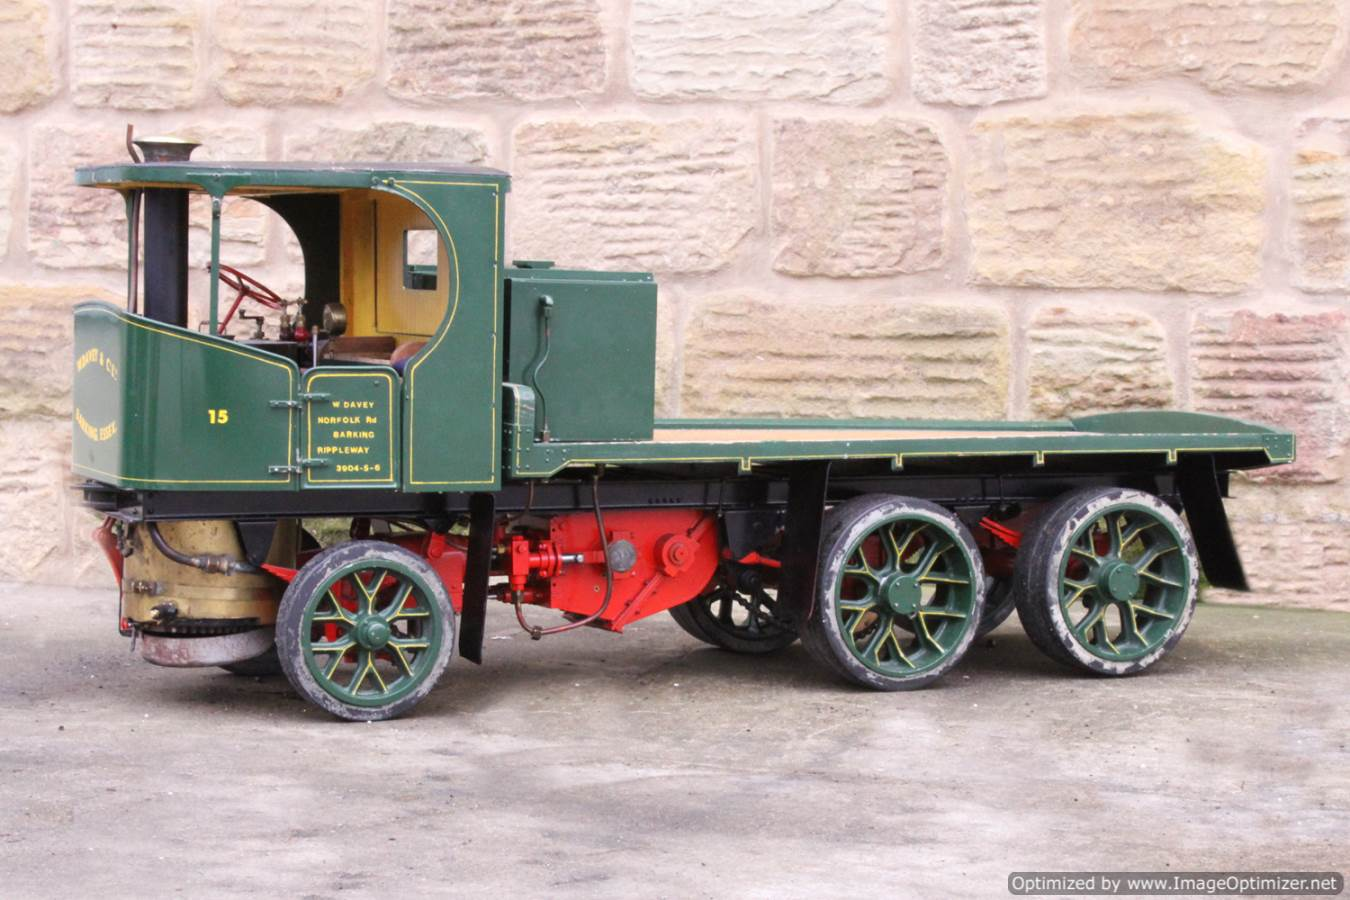 test Cayton twin axle live steam lorry for sale 08 Optimized